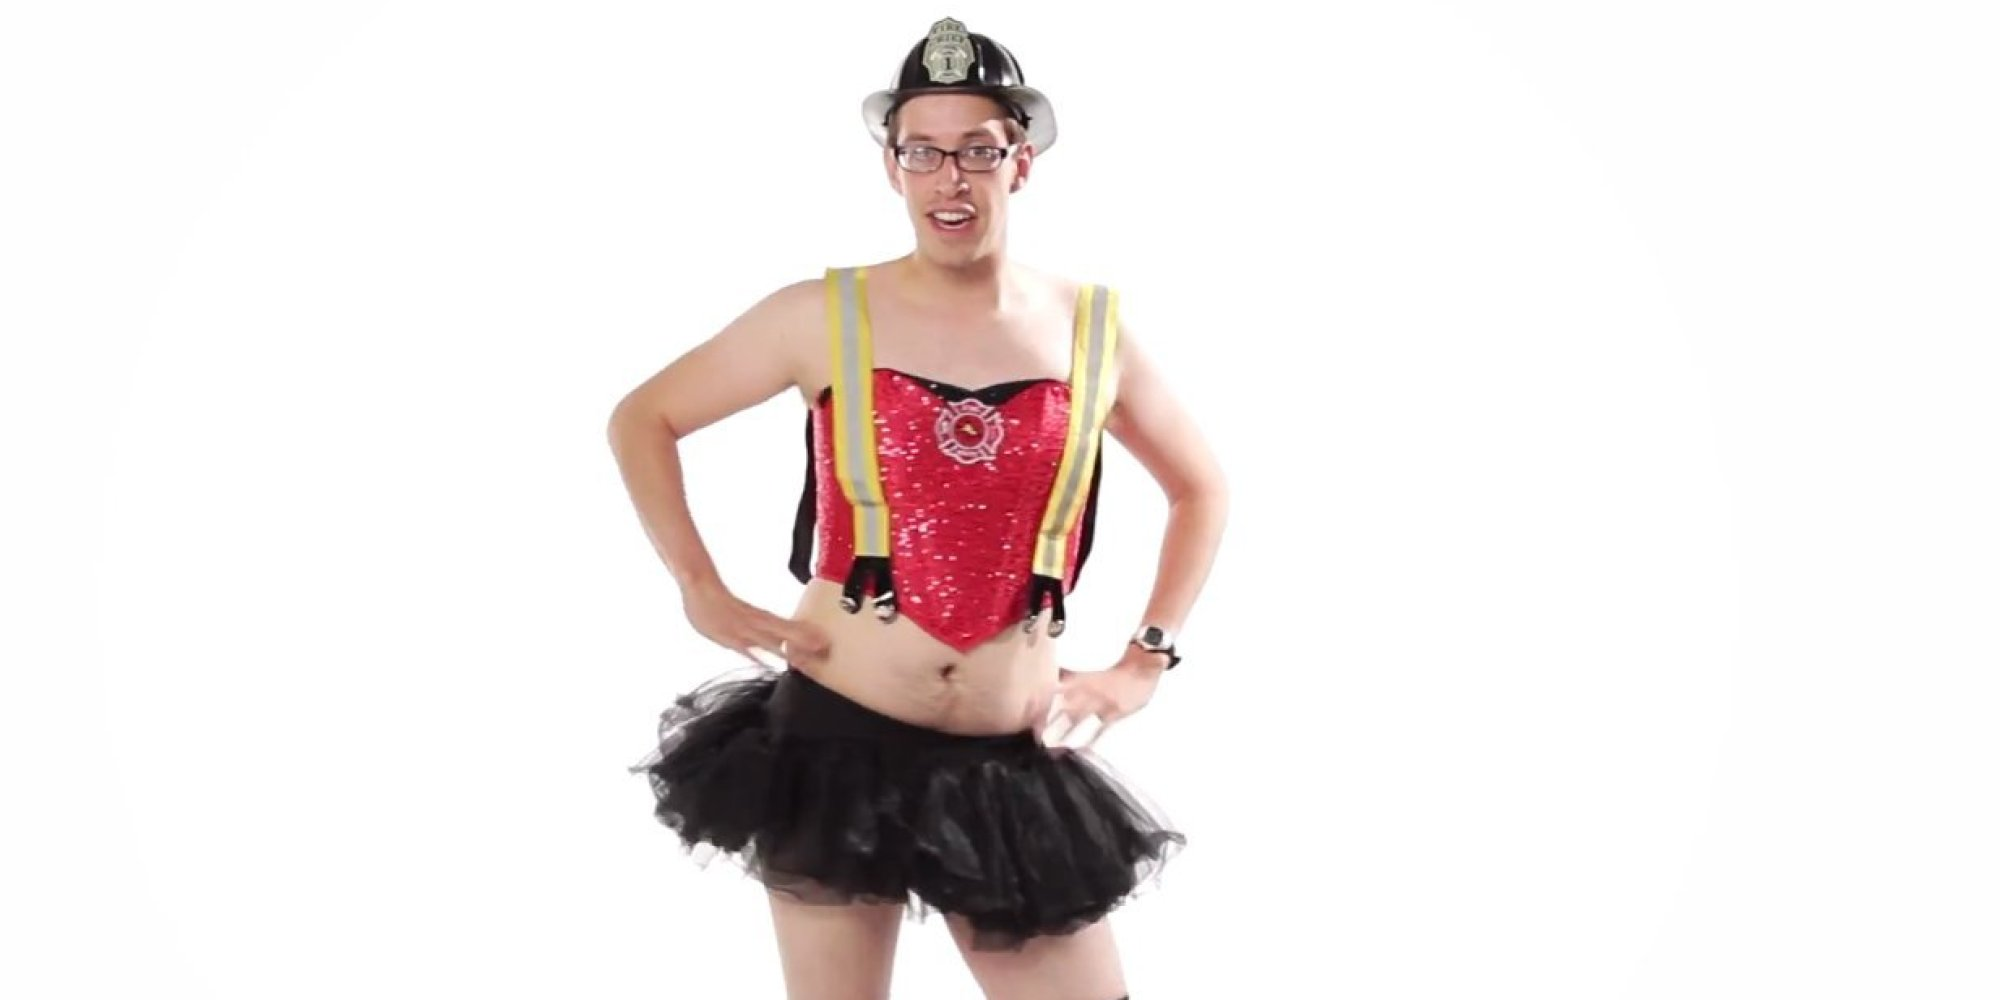 Men Try On u0027Sexyu0027 Halloween Costumes Acknowledge How Ridiculous They Are | HuffPost  sc 1 st  HuffPost : target mens halloween costumes  - Germanpascual.Com